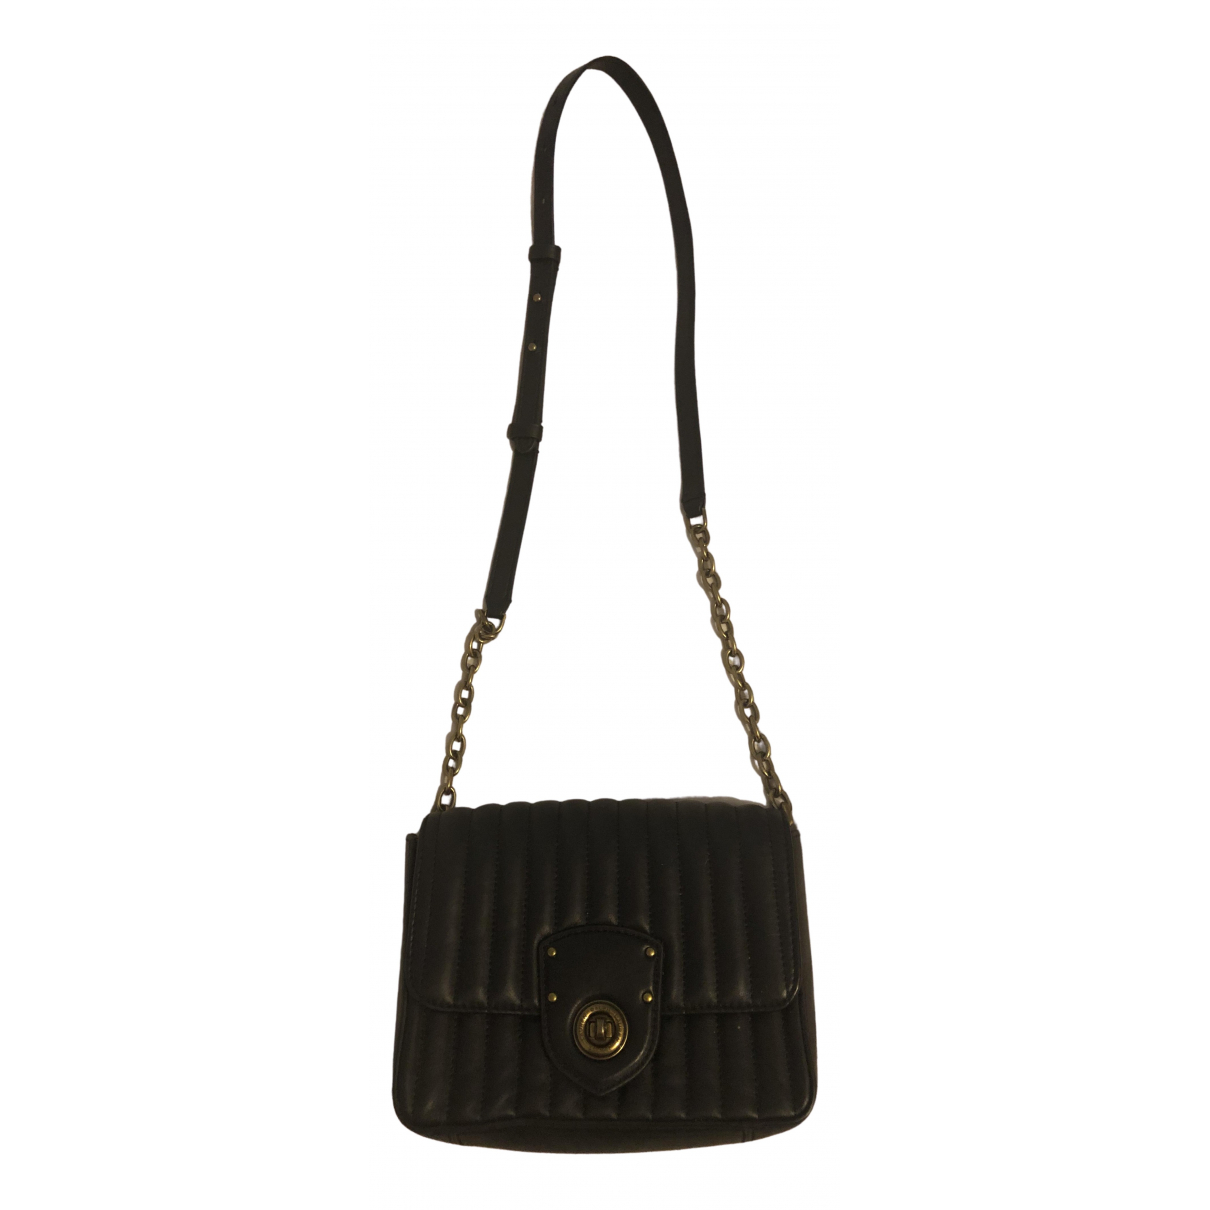 Lauren Ralph Lauren N Black Leather handbag for Women N